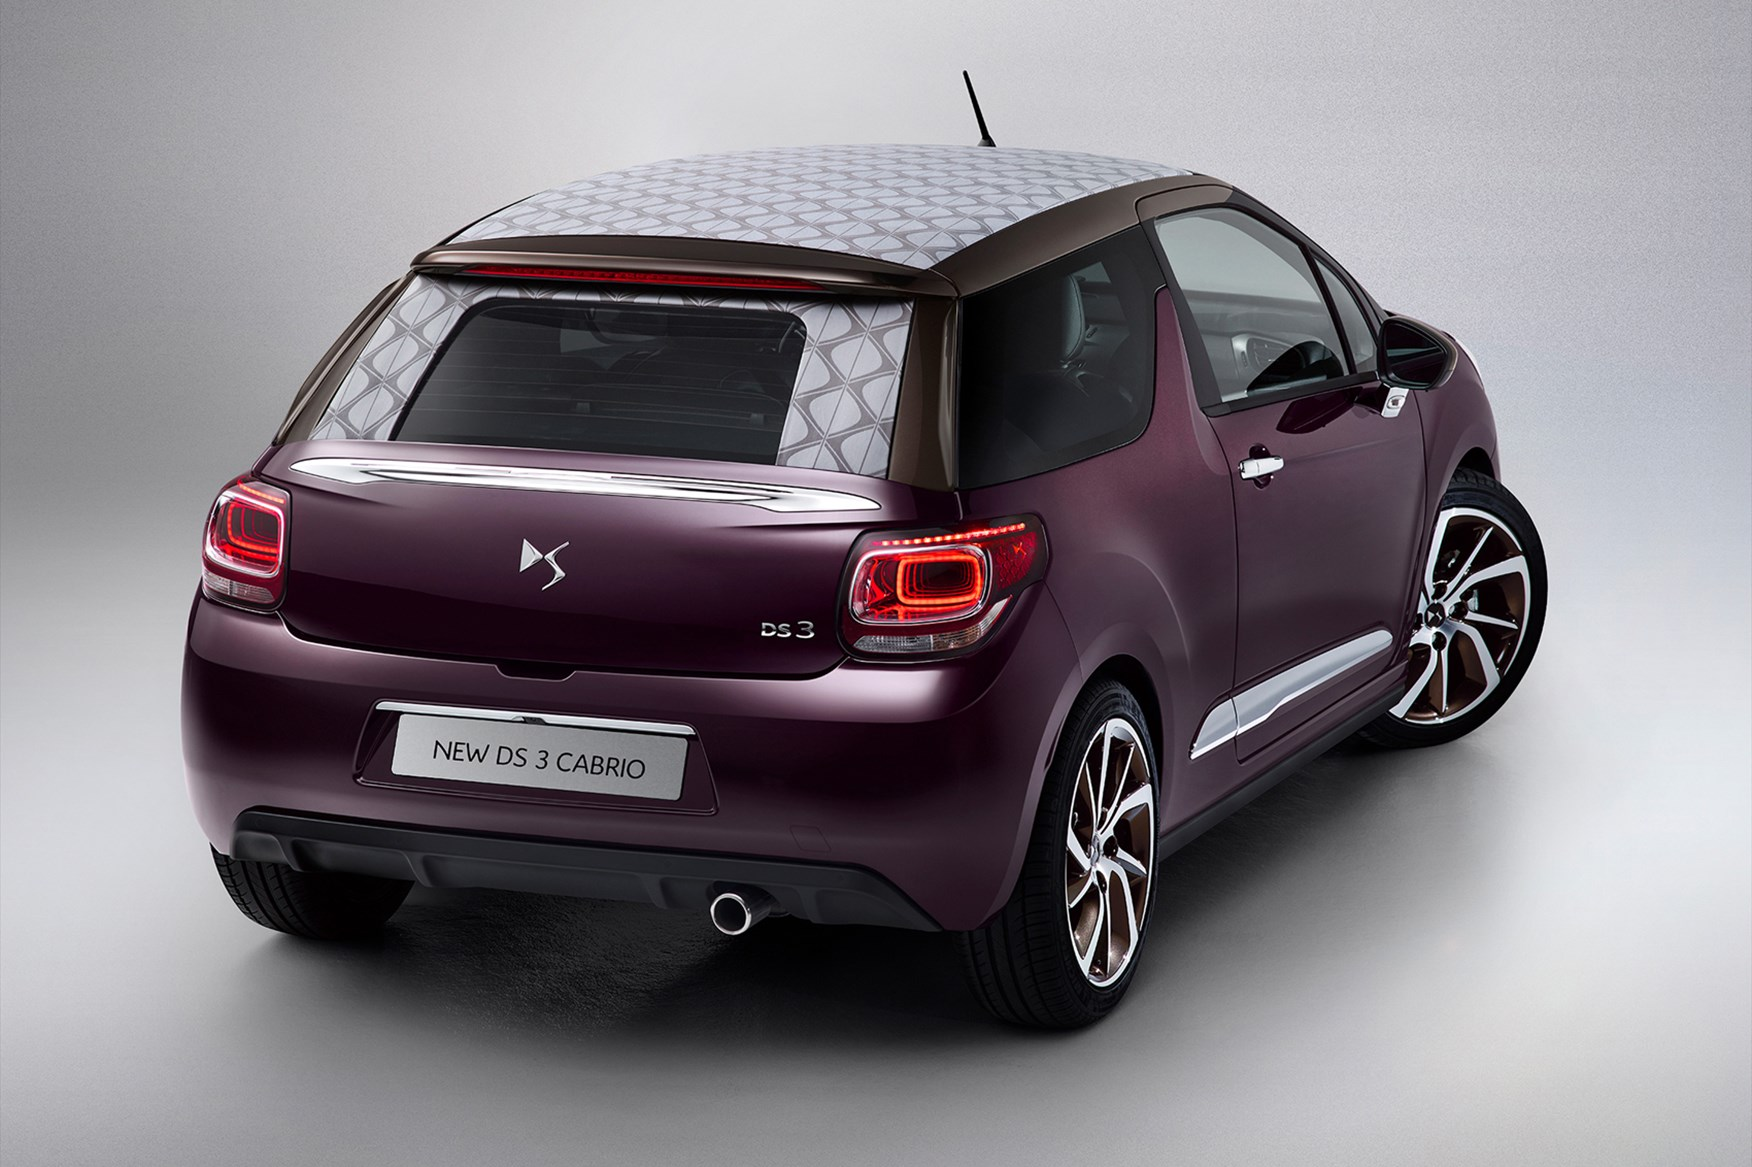 new notacitroen ds3 and ds3 cabrio revealed for 2016 by